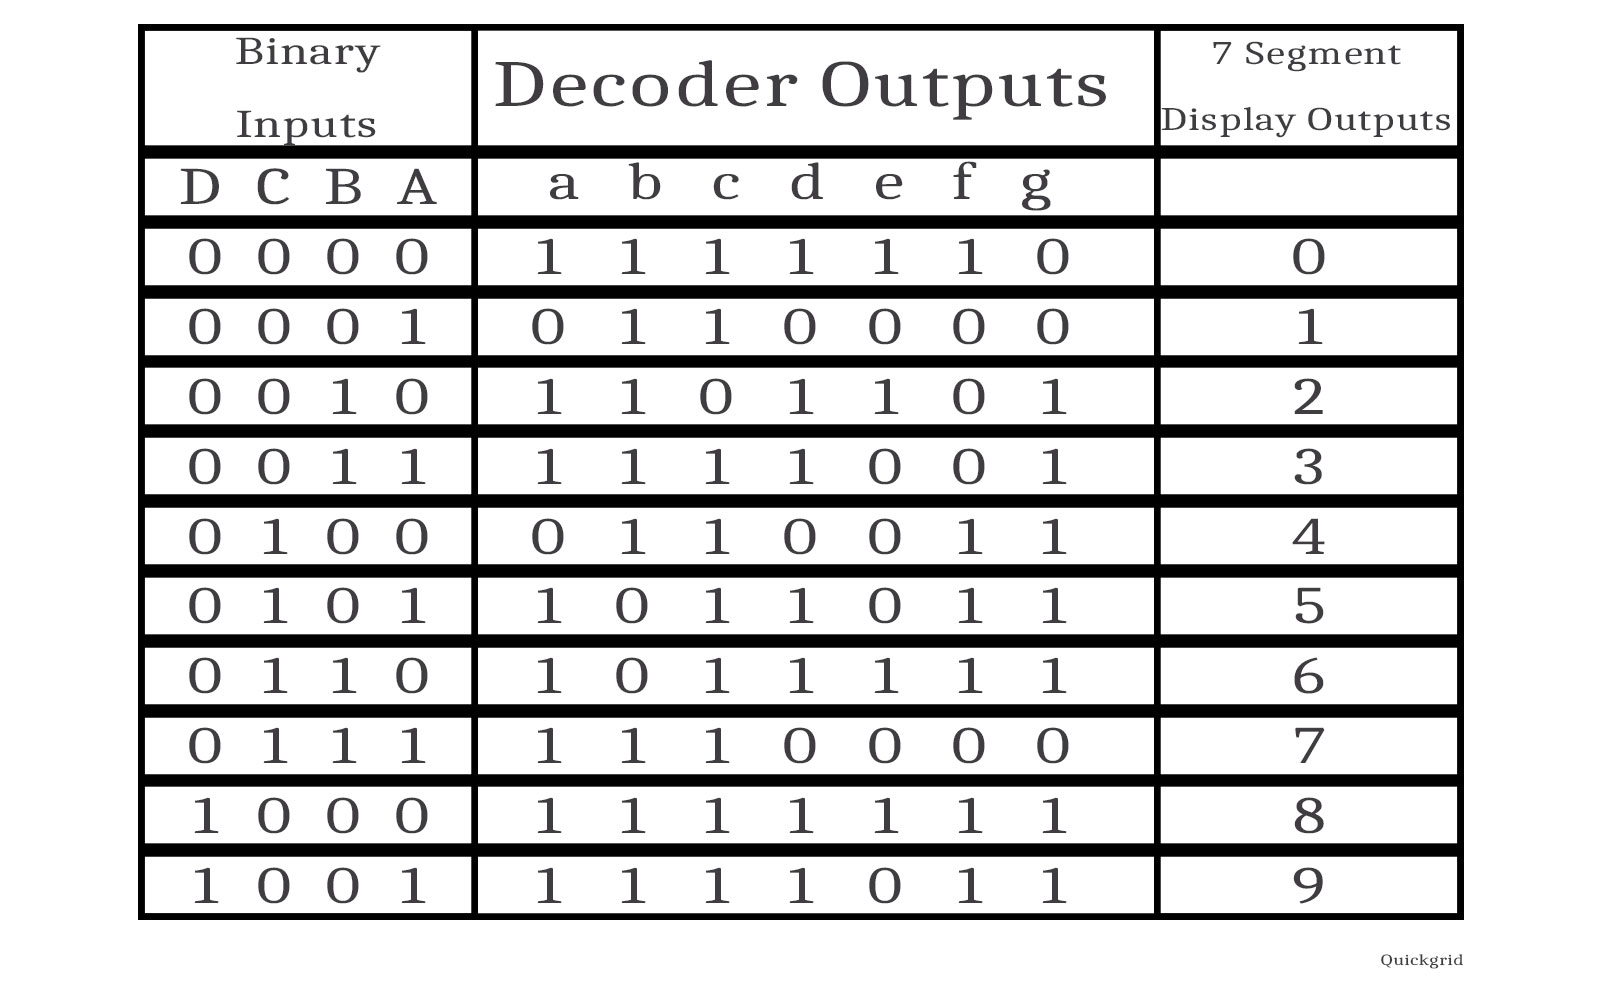 Binary Tables Principlesofafreesociety 33 Vhdl Example 18 4bit Binarytobcd Converter Logic Youtube To Gray Code Conversion Truth Table Neo Gifts